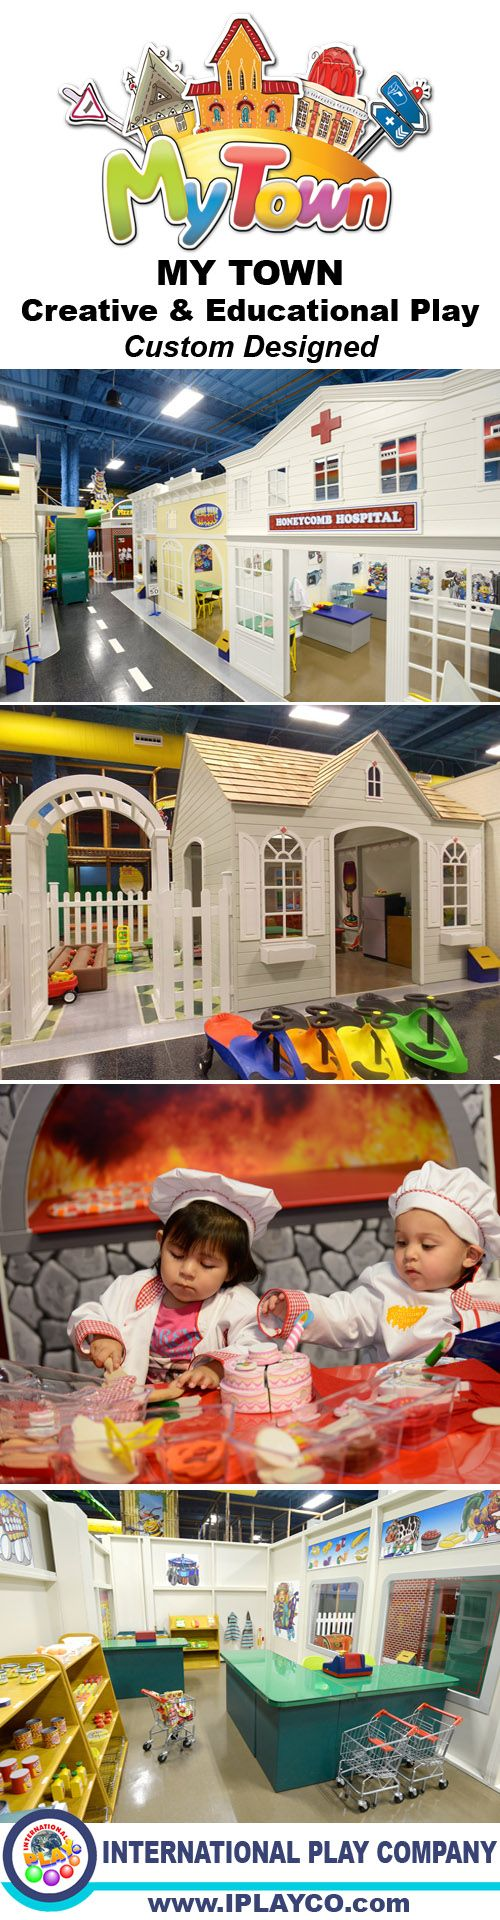 MY TOWN has now arrived. My Town is a creative and education play pretend village. All custom designed. Great addition to a family entertainment center, or a business on its own. Contact us for more information. #weCREATEfun and #weBUILDfun - Iplayco has been creating fun since 1999.